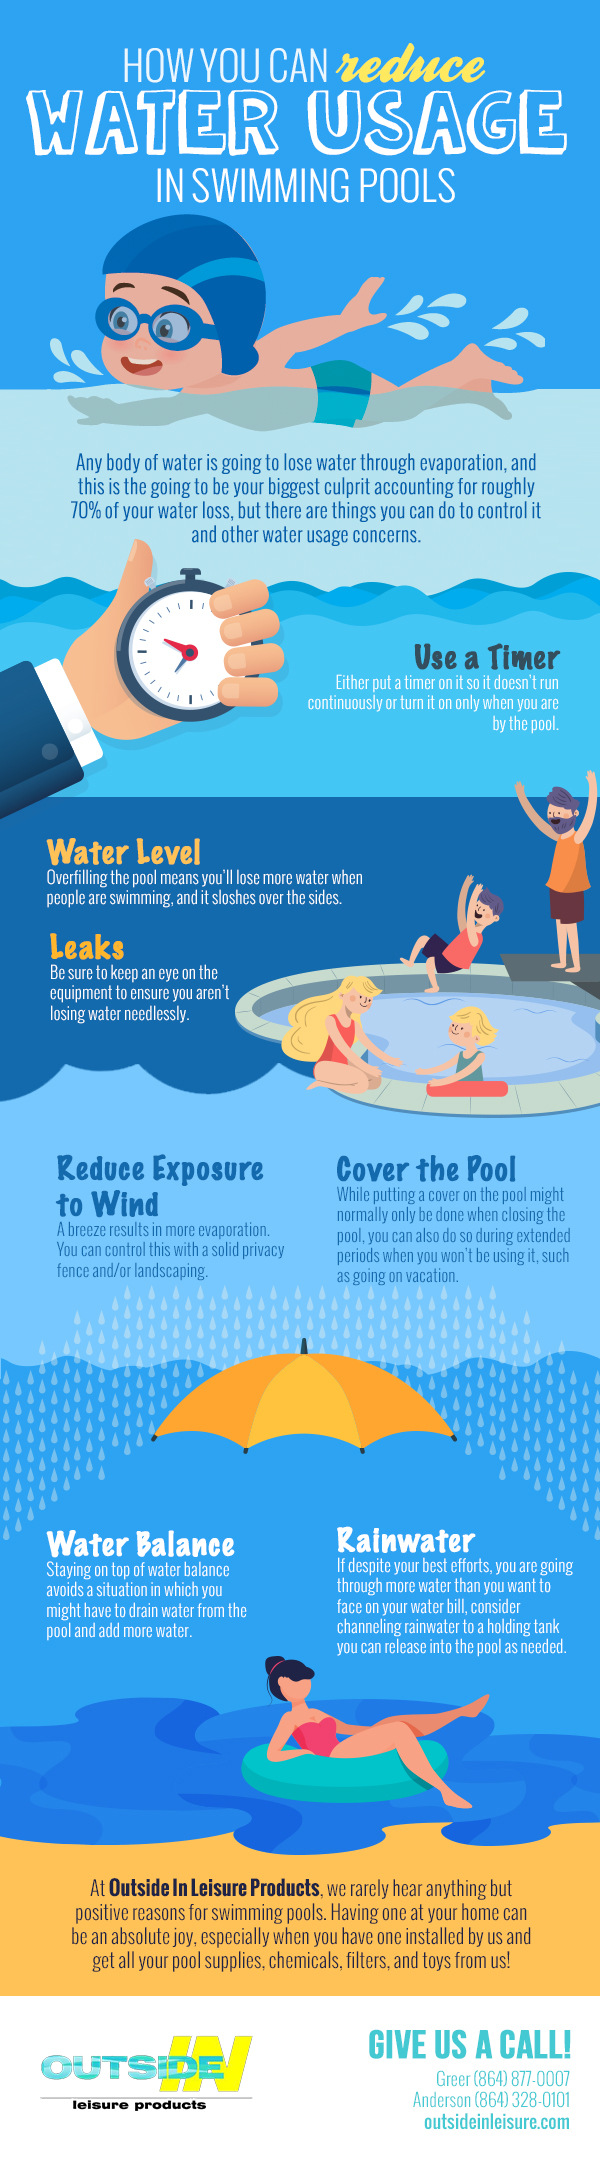 How You Can Reduce Water Usage in Swimming Pools [infographic]